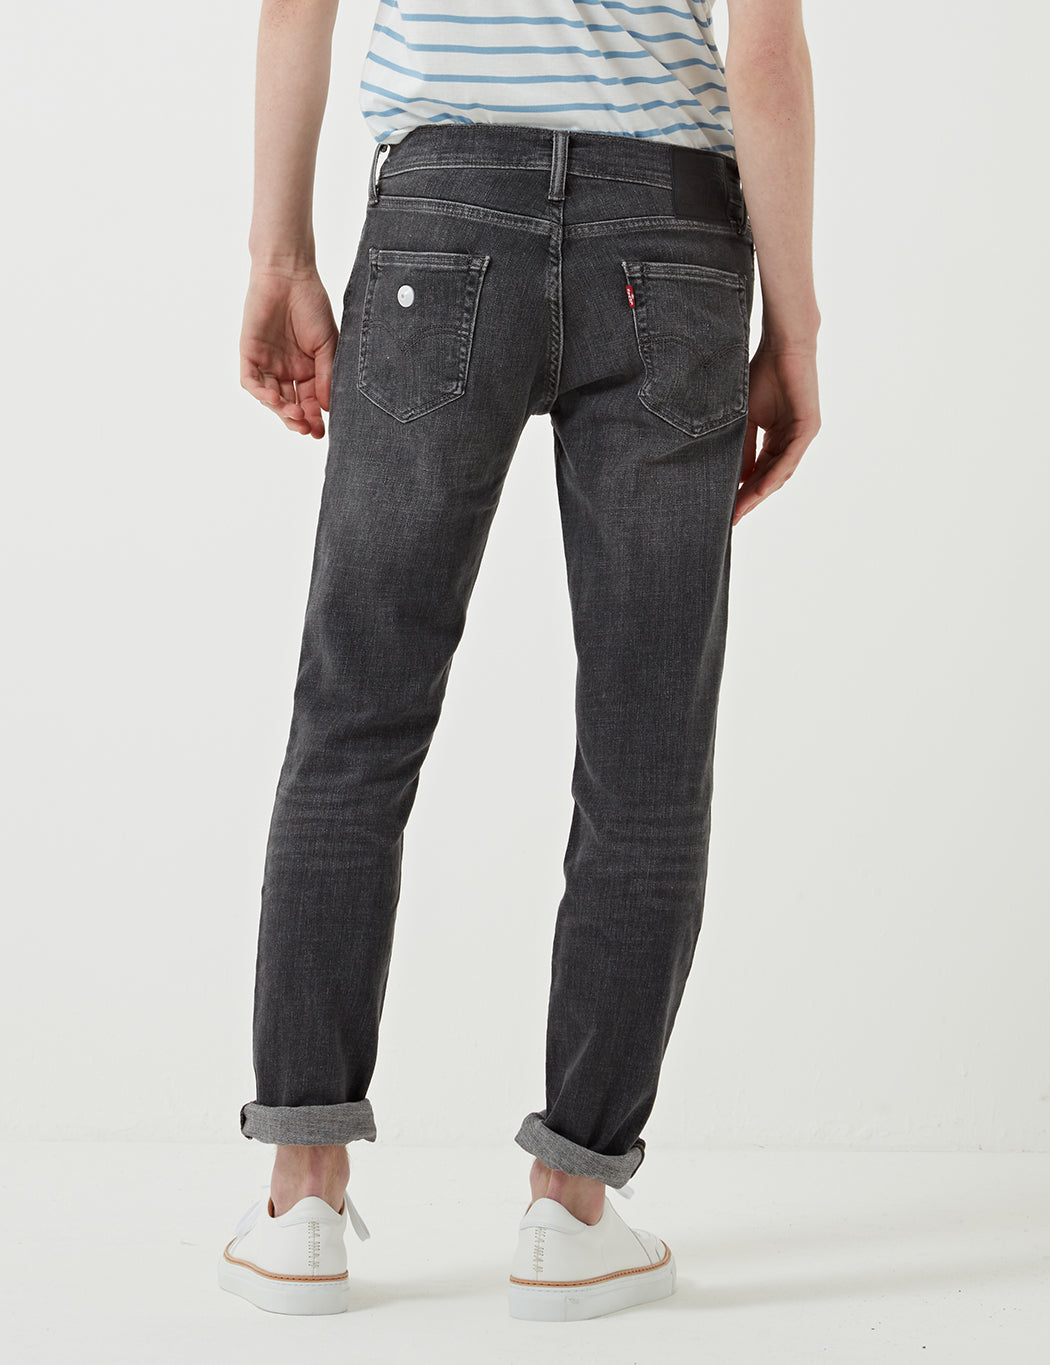 5cf7629c713 Levis 511 Jeans (Slim Straight) - Armstrong Black | URBAN EXCESS.